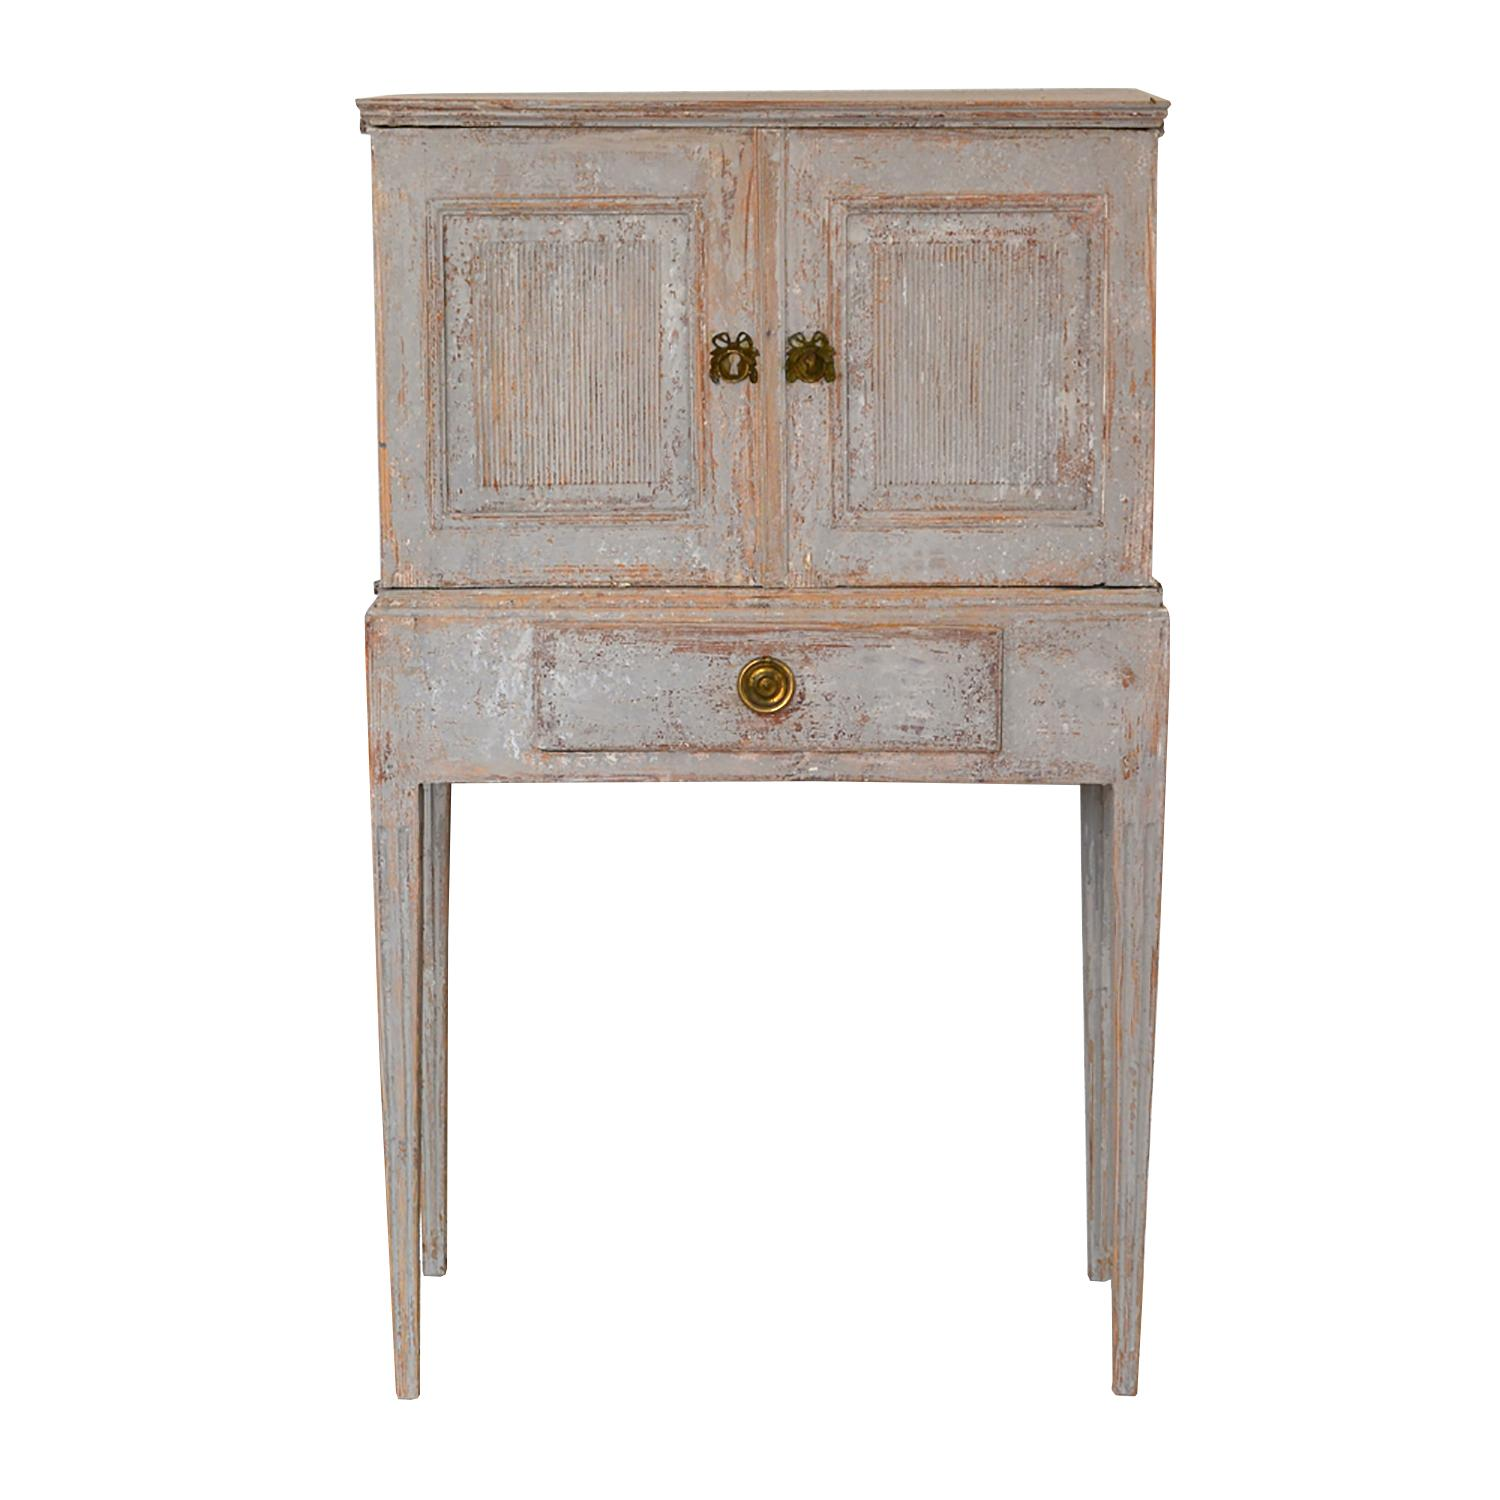 Carved Wood 18th Century Gustavian Cabinet Cupboard